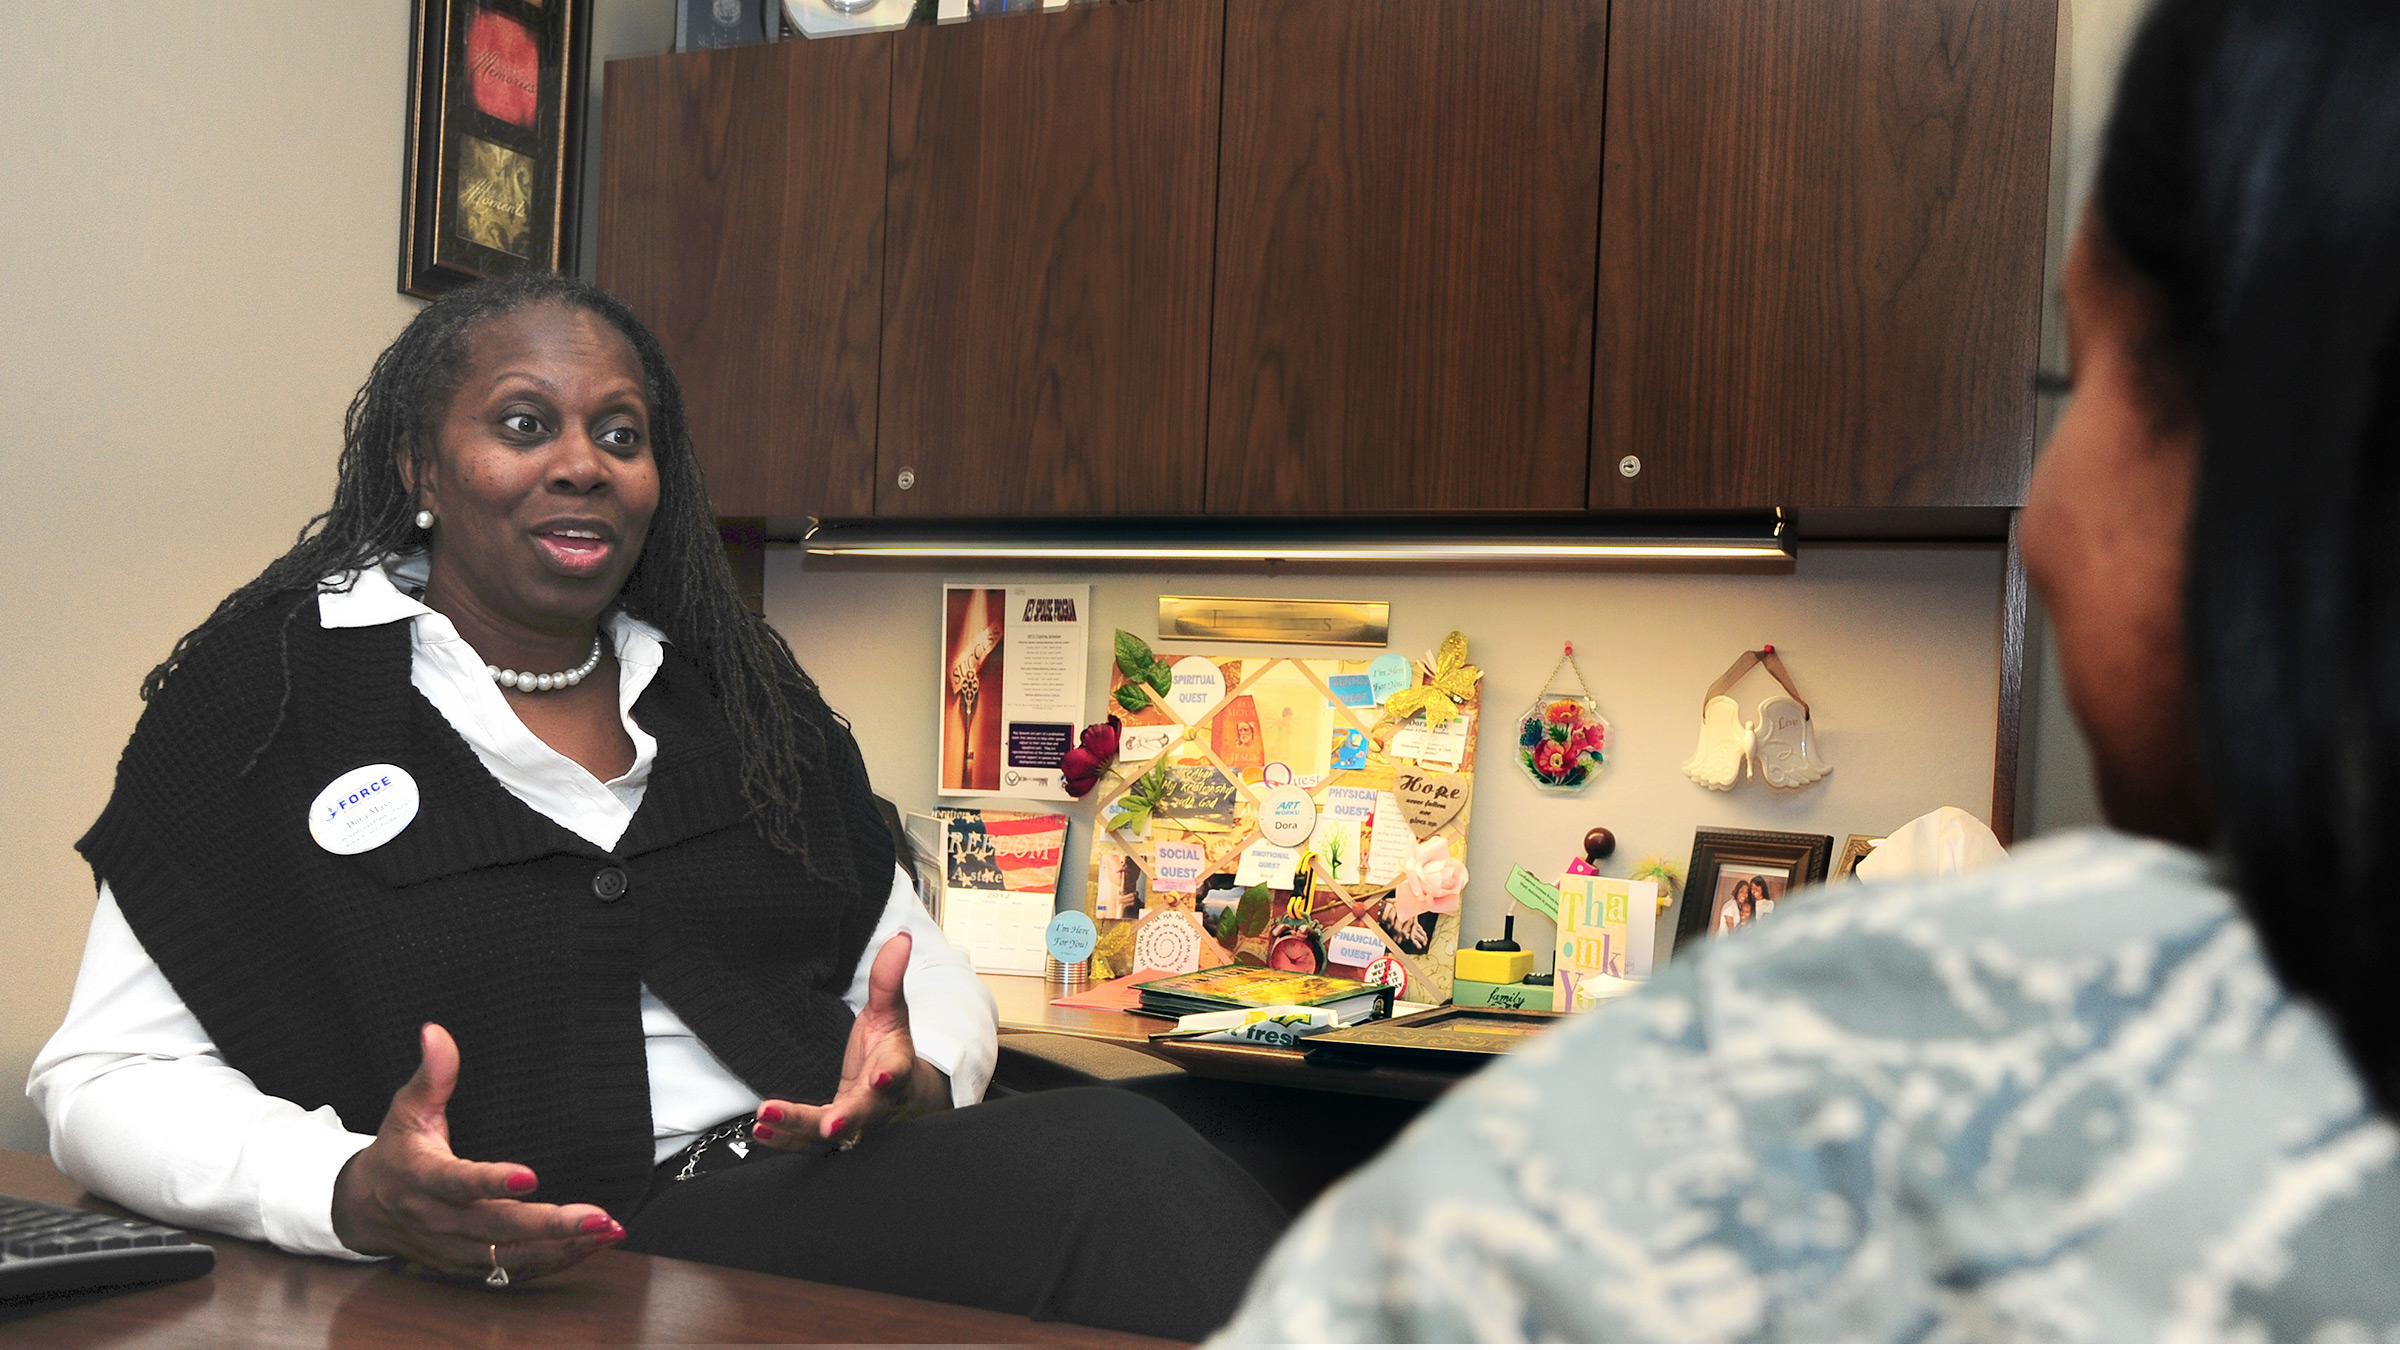 Community readiness consultant talks with a service member